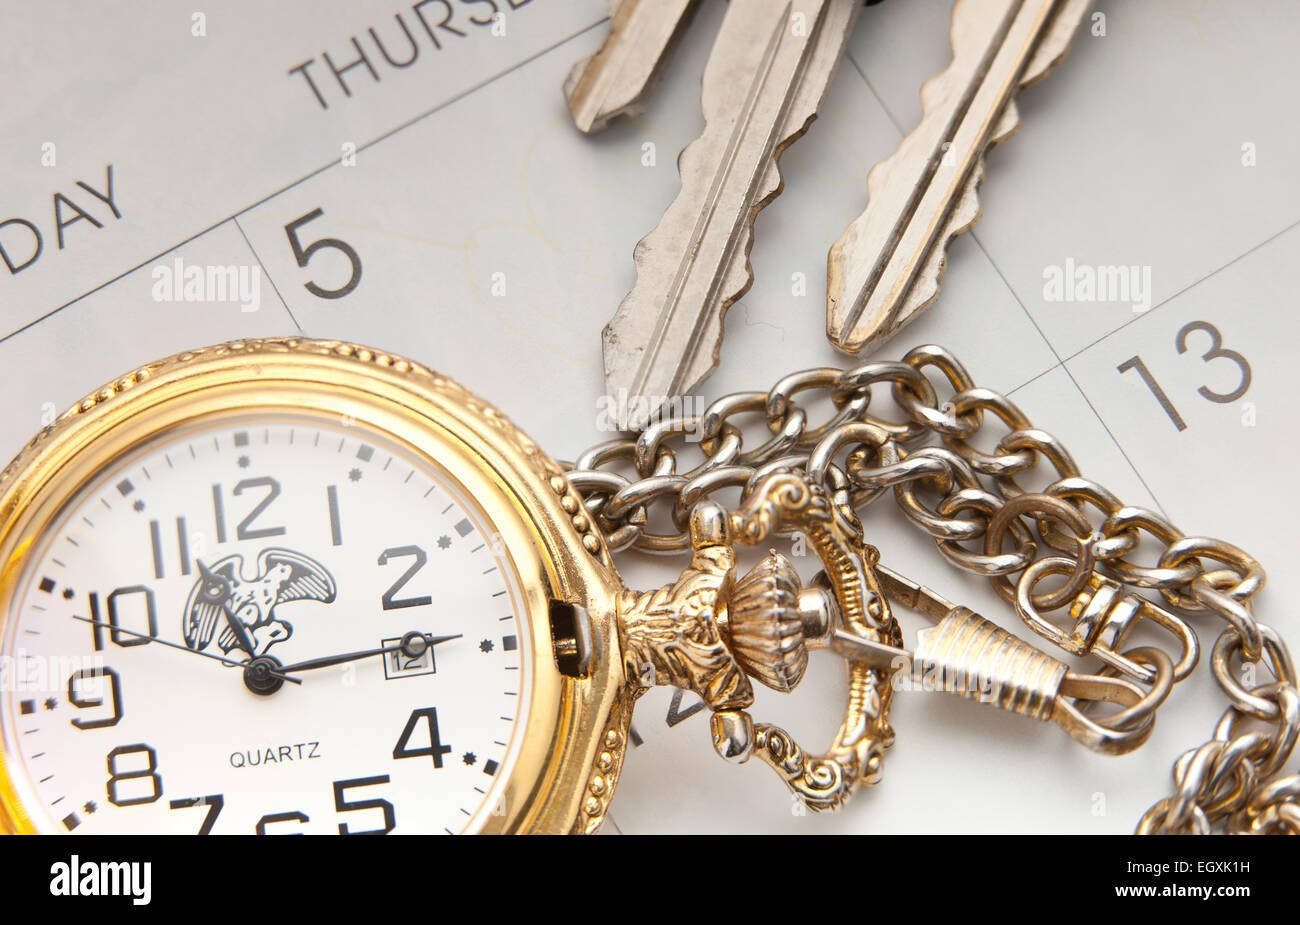 Concept image of scheduling. - Stock Image